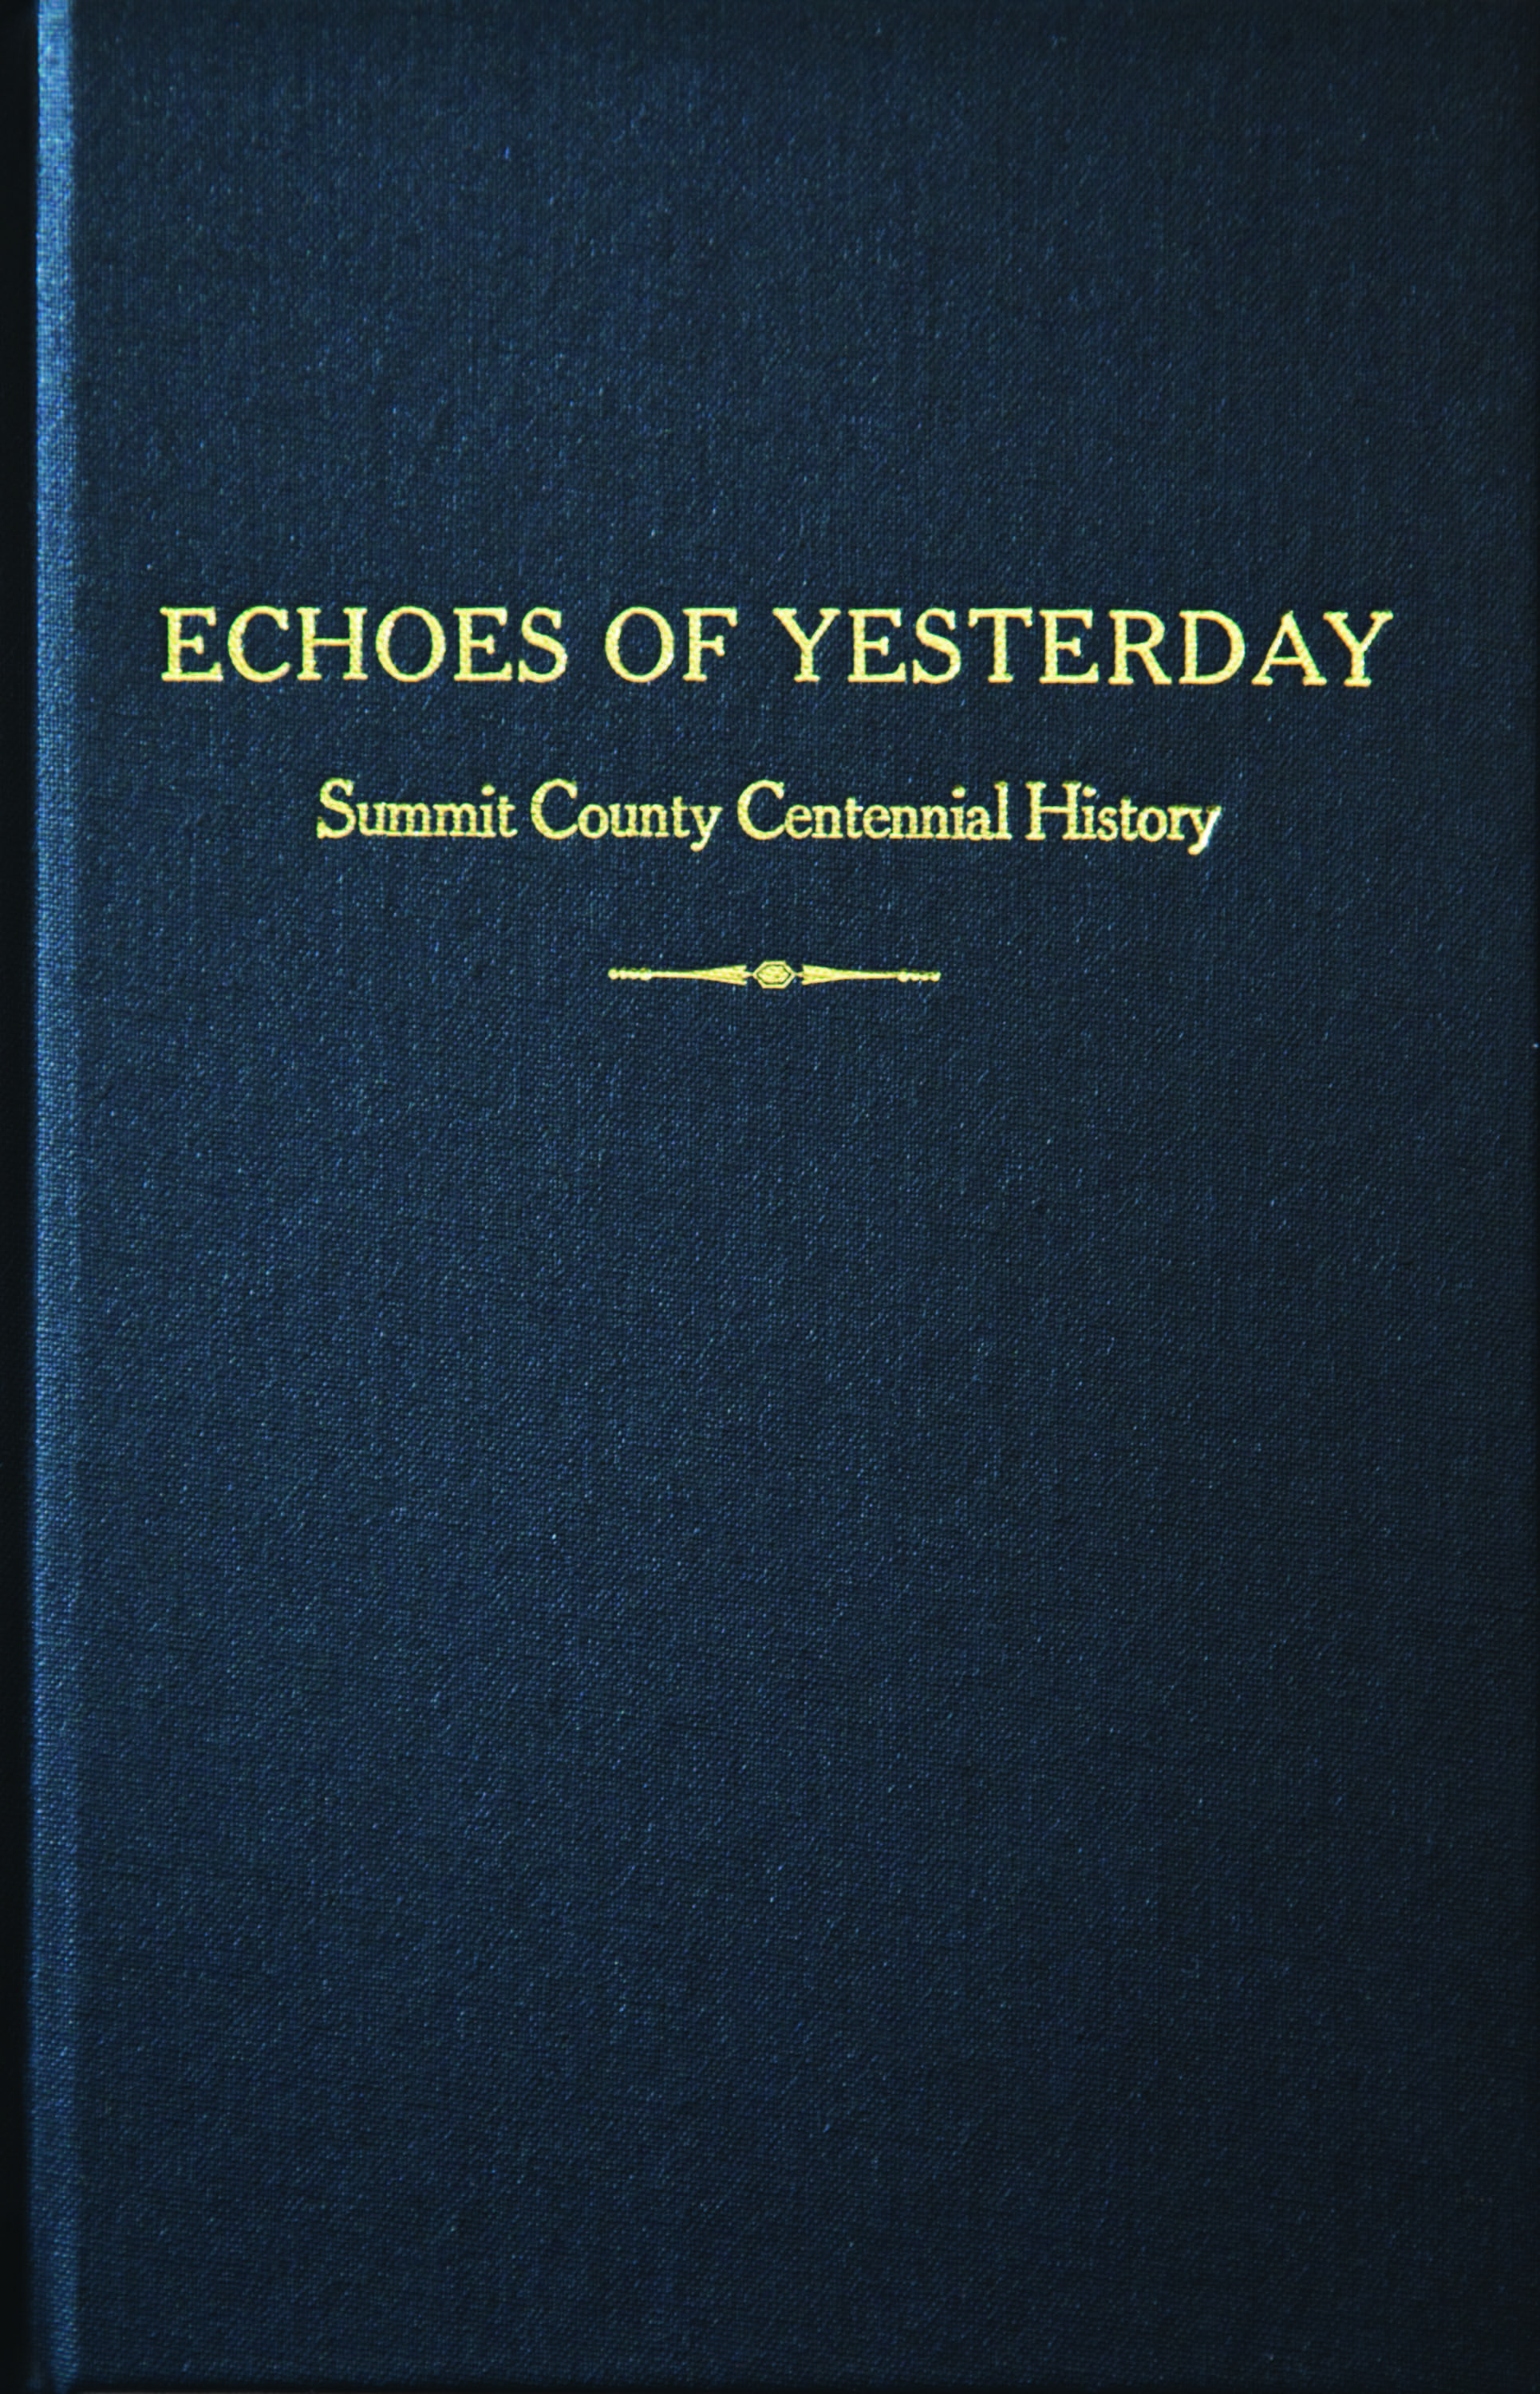 Echos of Yesterday